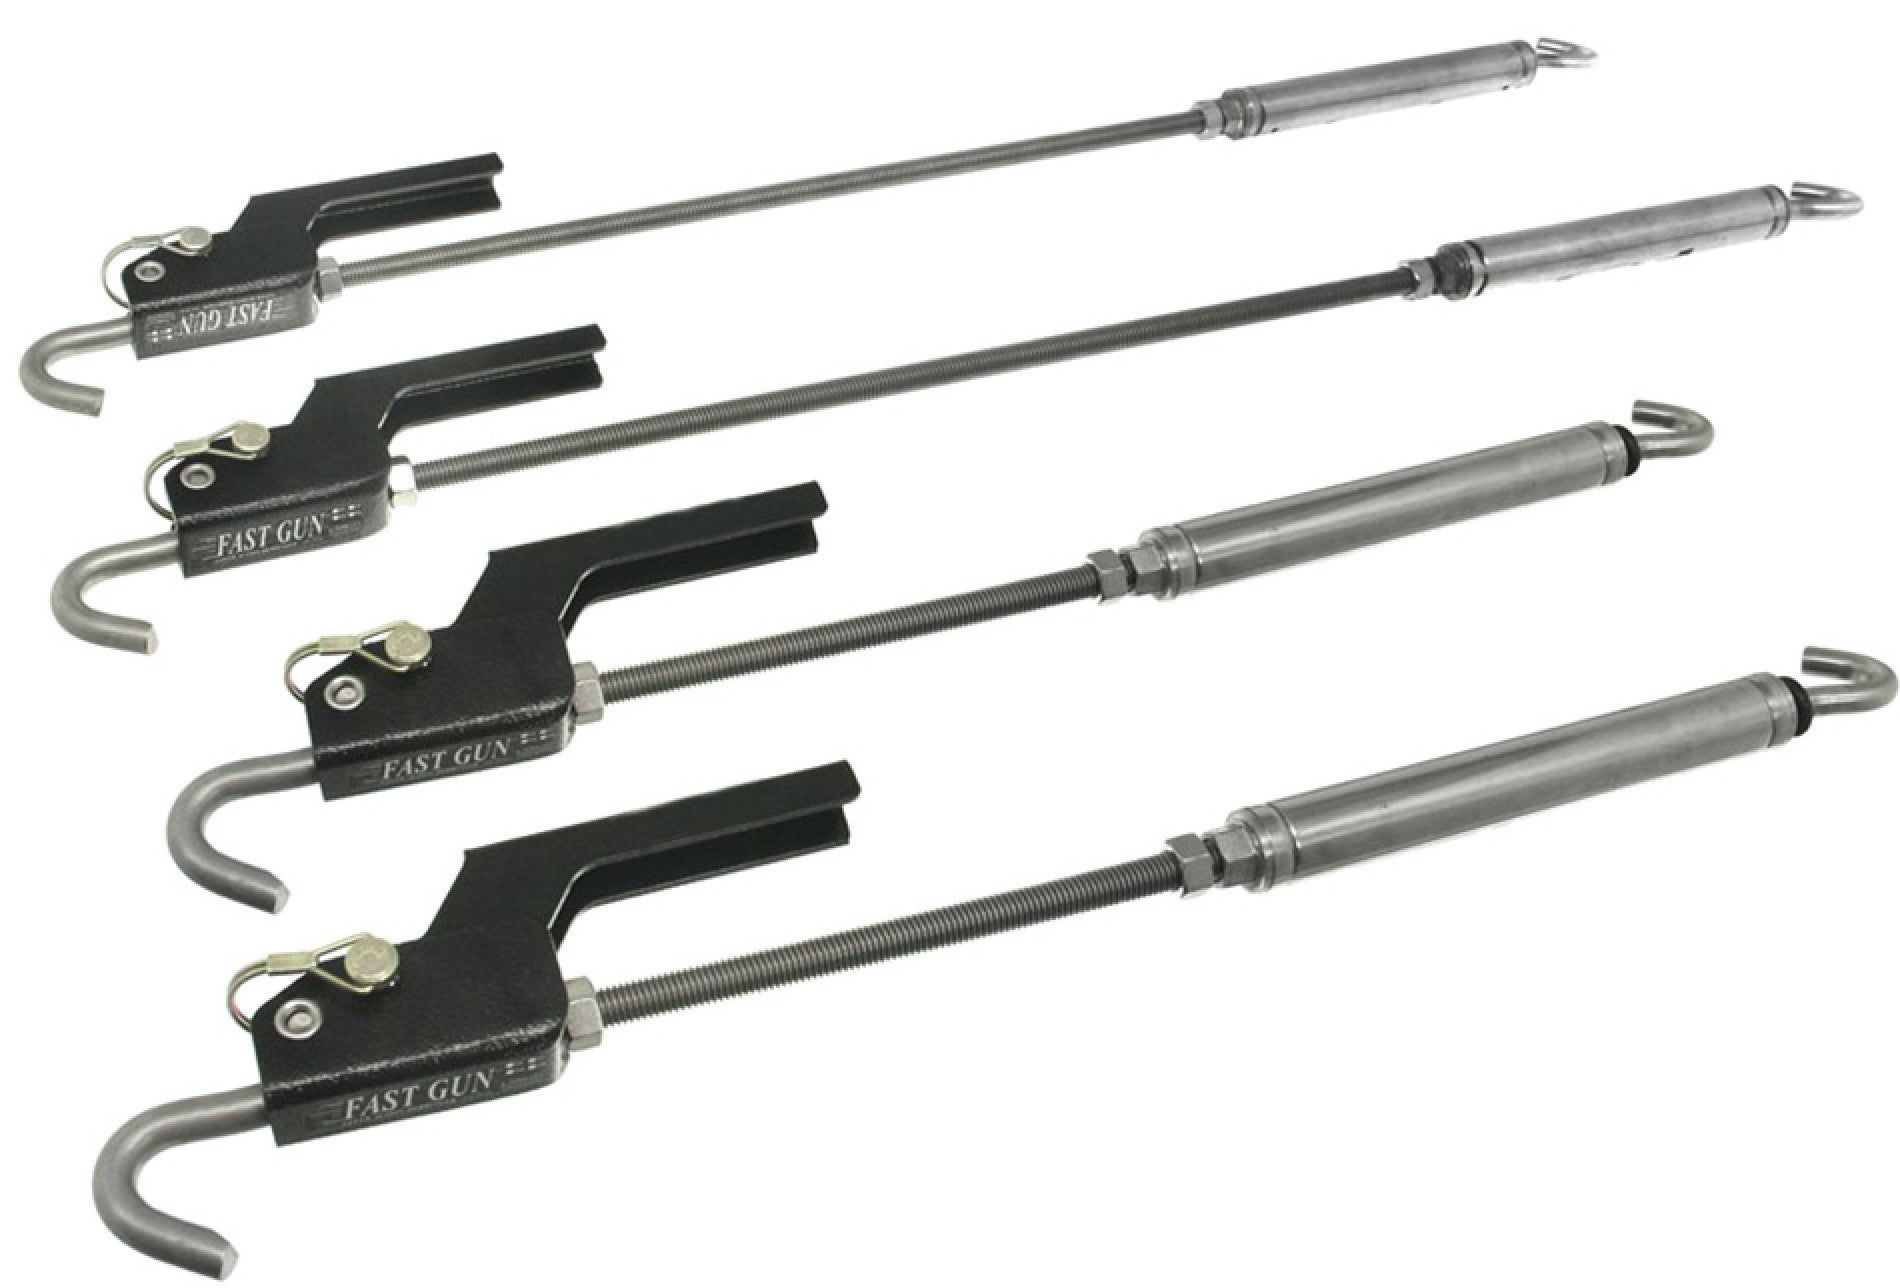 Torklift Turnbuckles